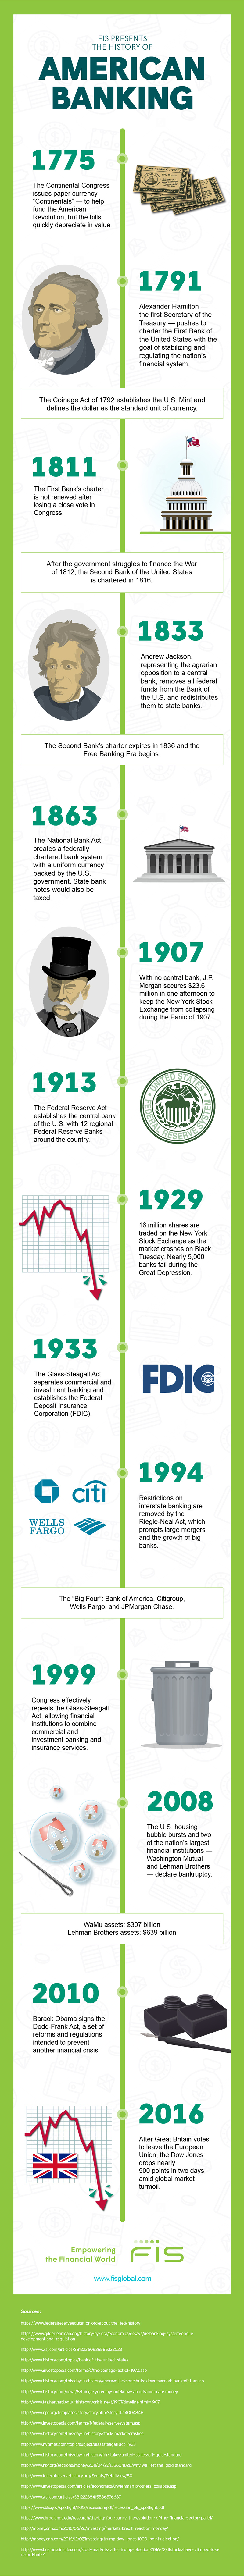 The History Of American Banking - Infographic